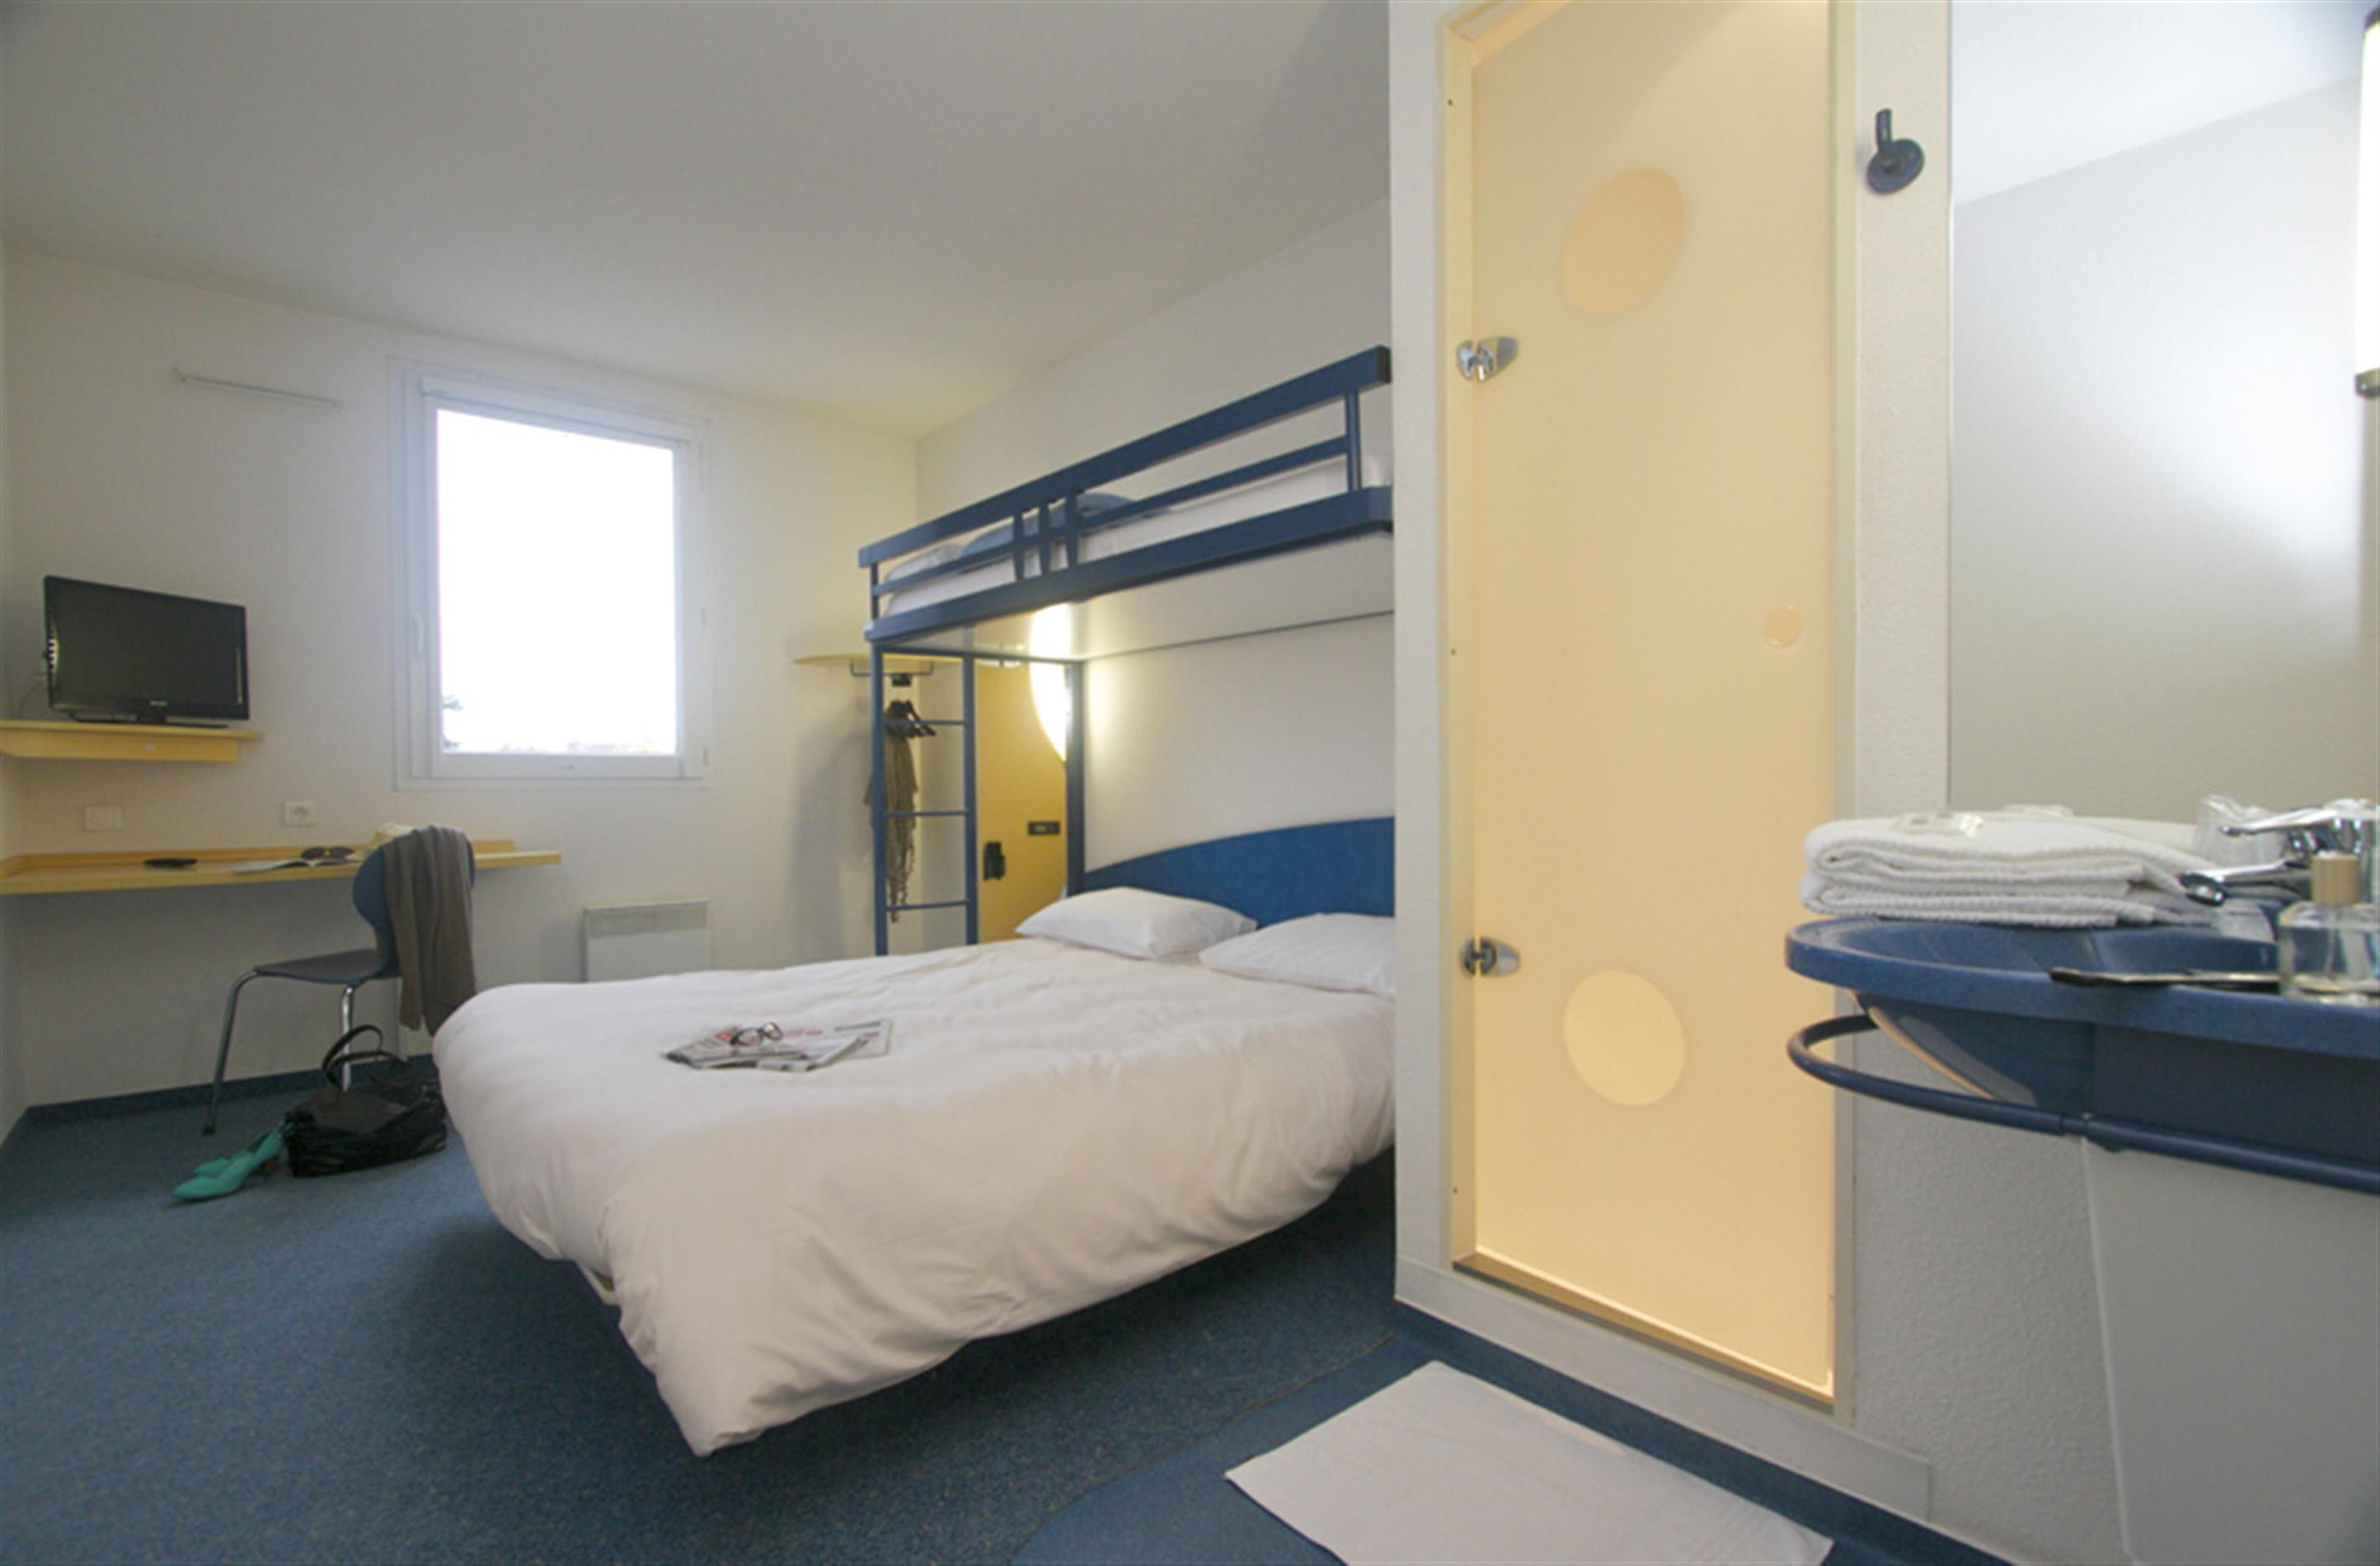 Chambre 1 2 ou 3 pers chambres d 39 hotel prix budget for Prix chambre ibis